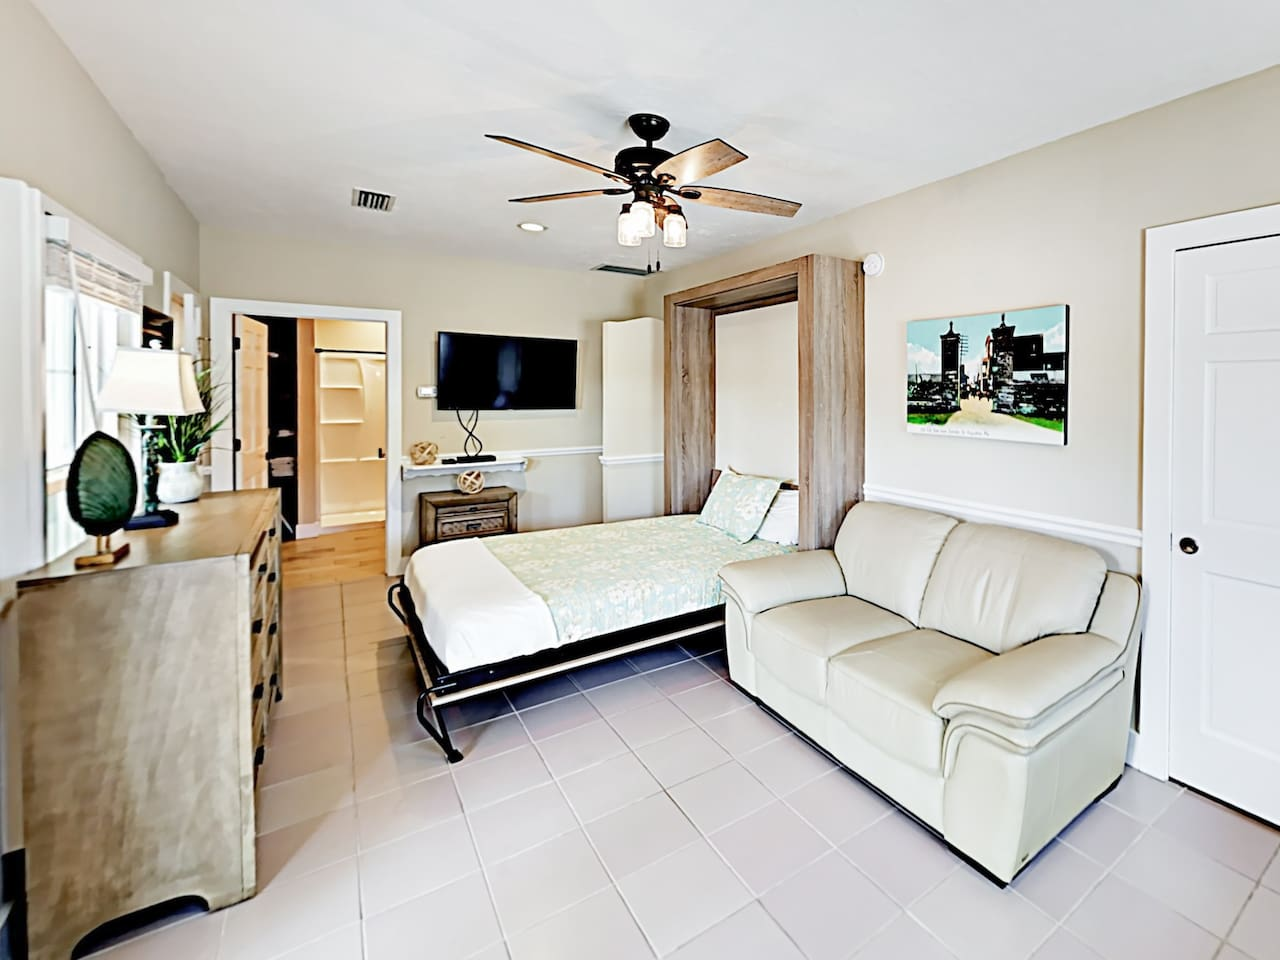 Welcome to St. Augustine! This studio is professionally managed by TurnKey Vacation Rentals.